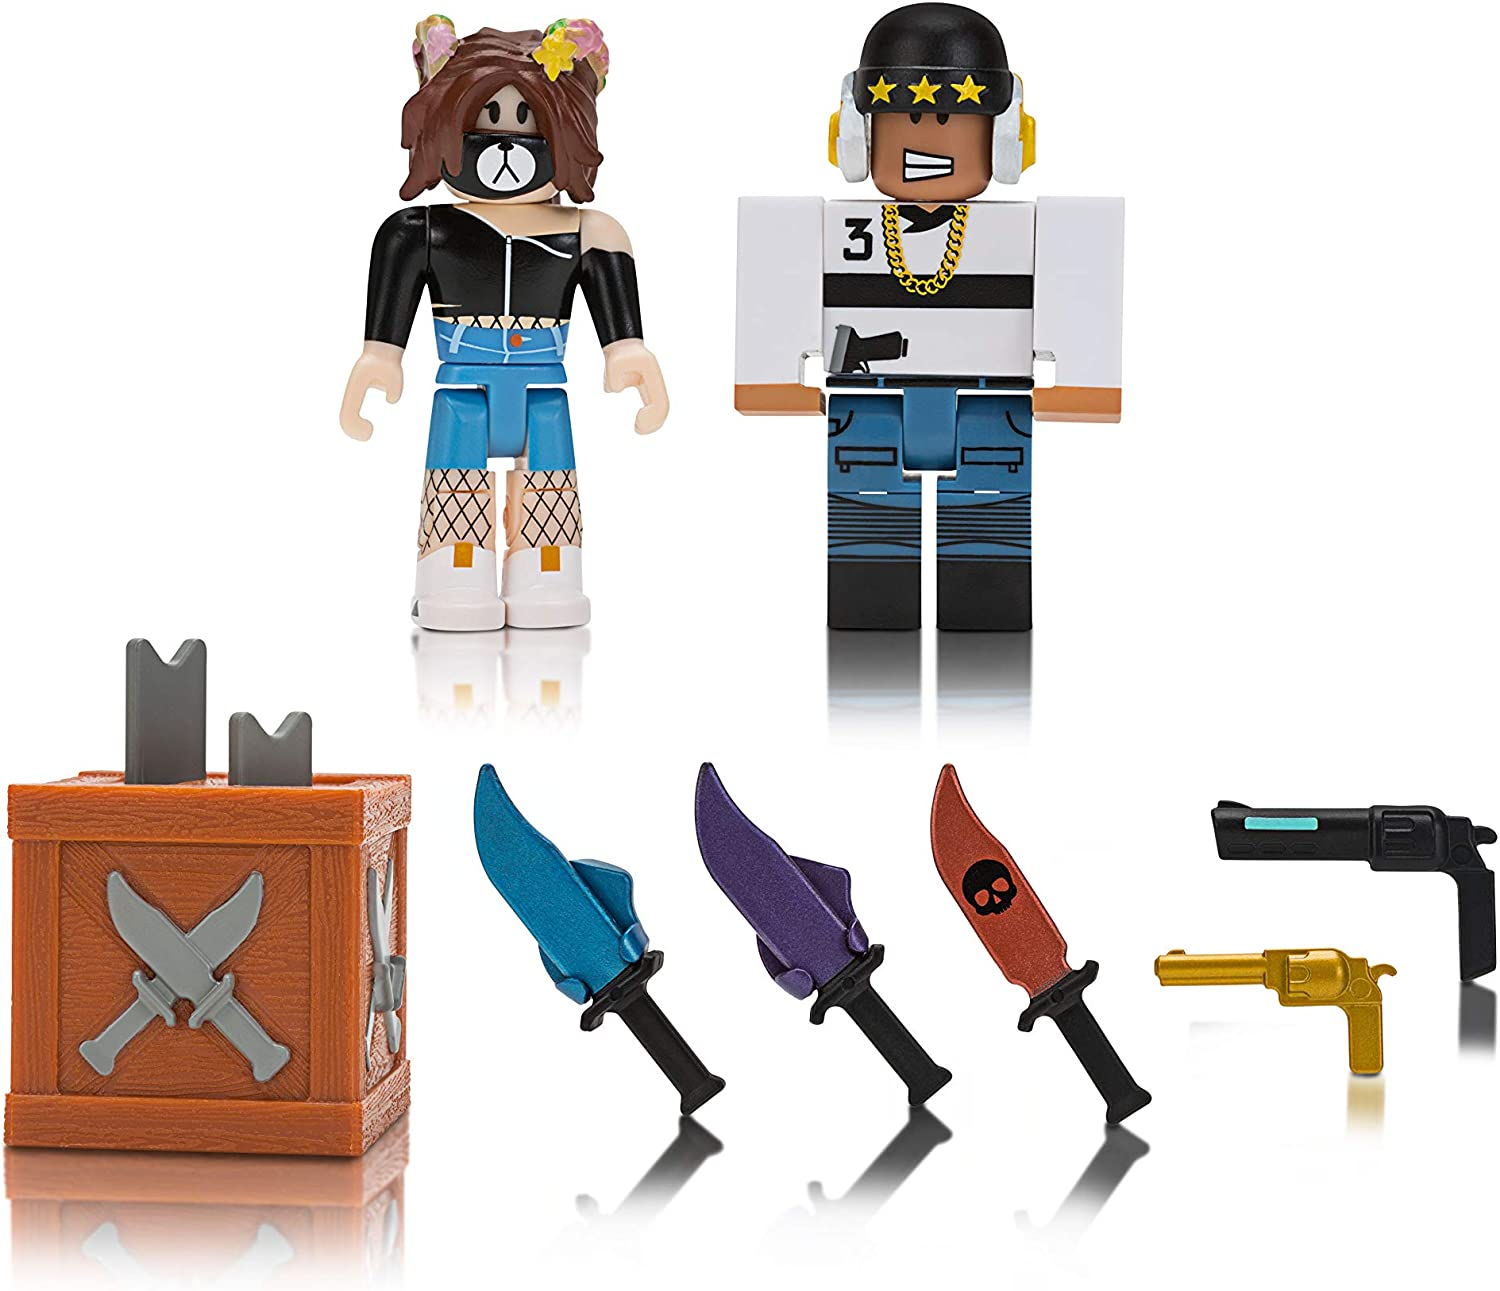 Murder Mystery 2 Trading Hub Roblox Amazon Com Roblox Action Collection Murder Mystery 2 Game Pack Includes Exclusive Virtual Item Toys Games